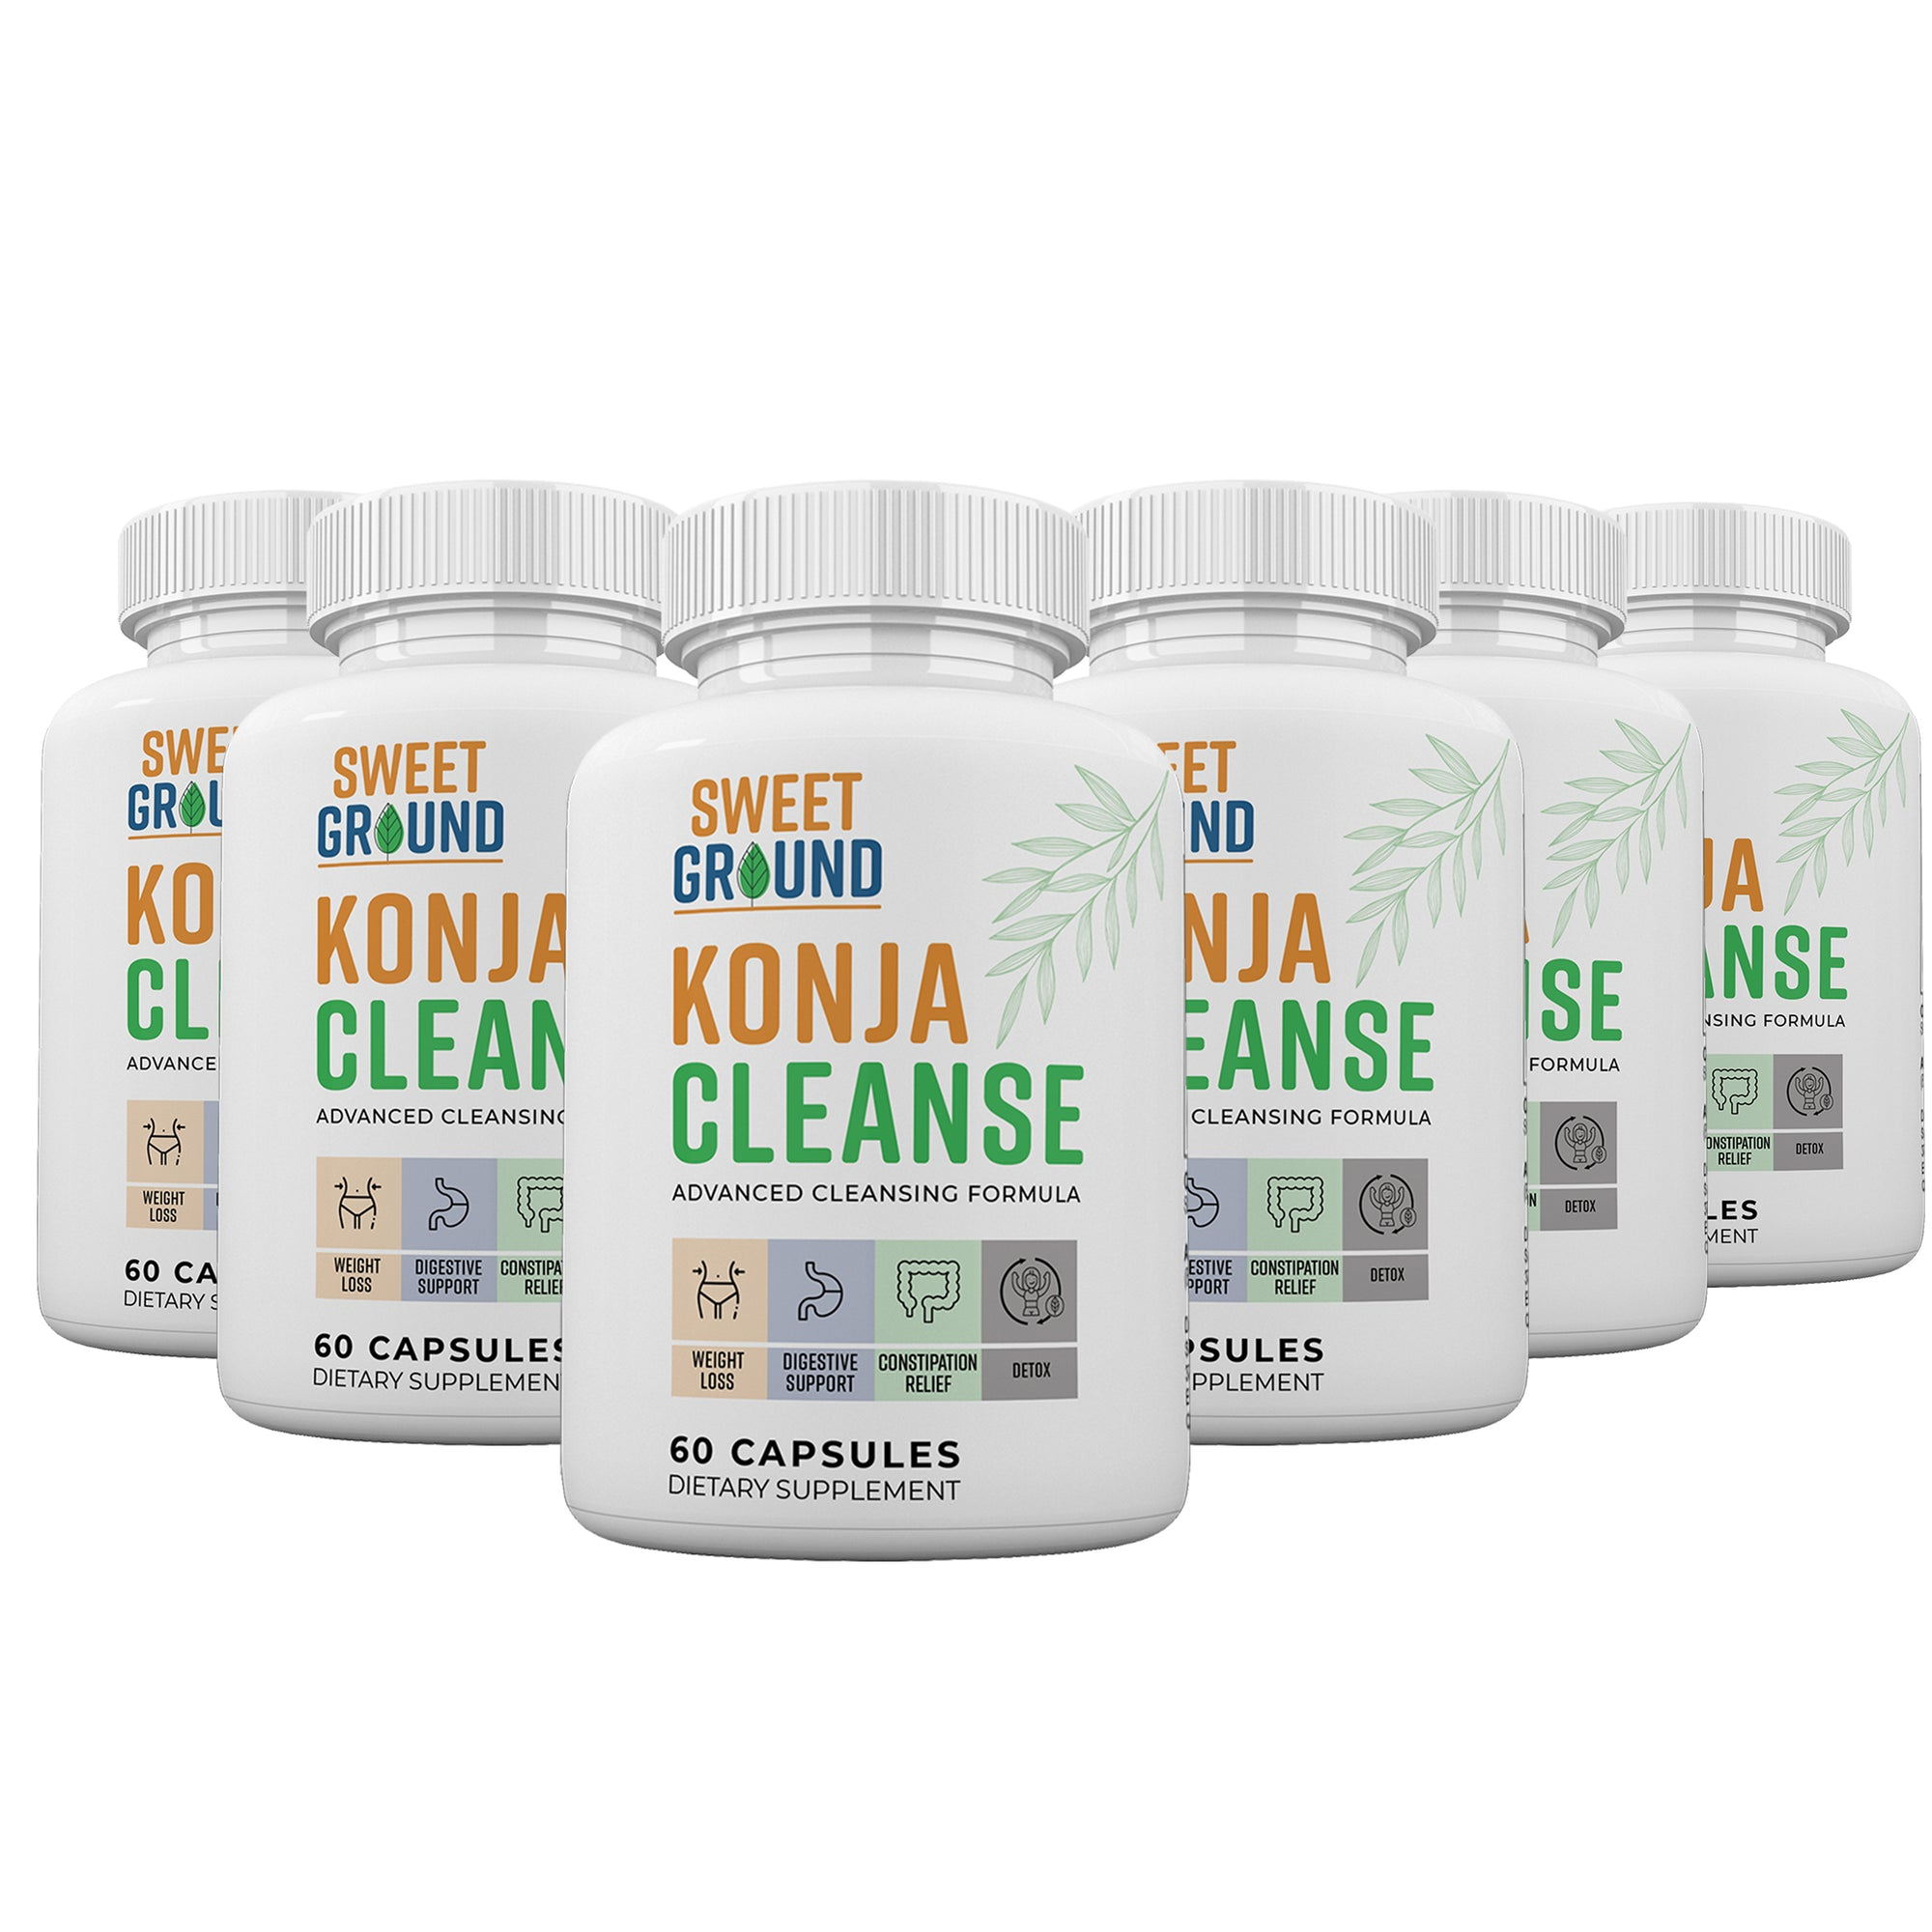 KonjaCleanse - 6 Month Supply (Best Seller)